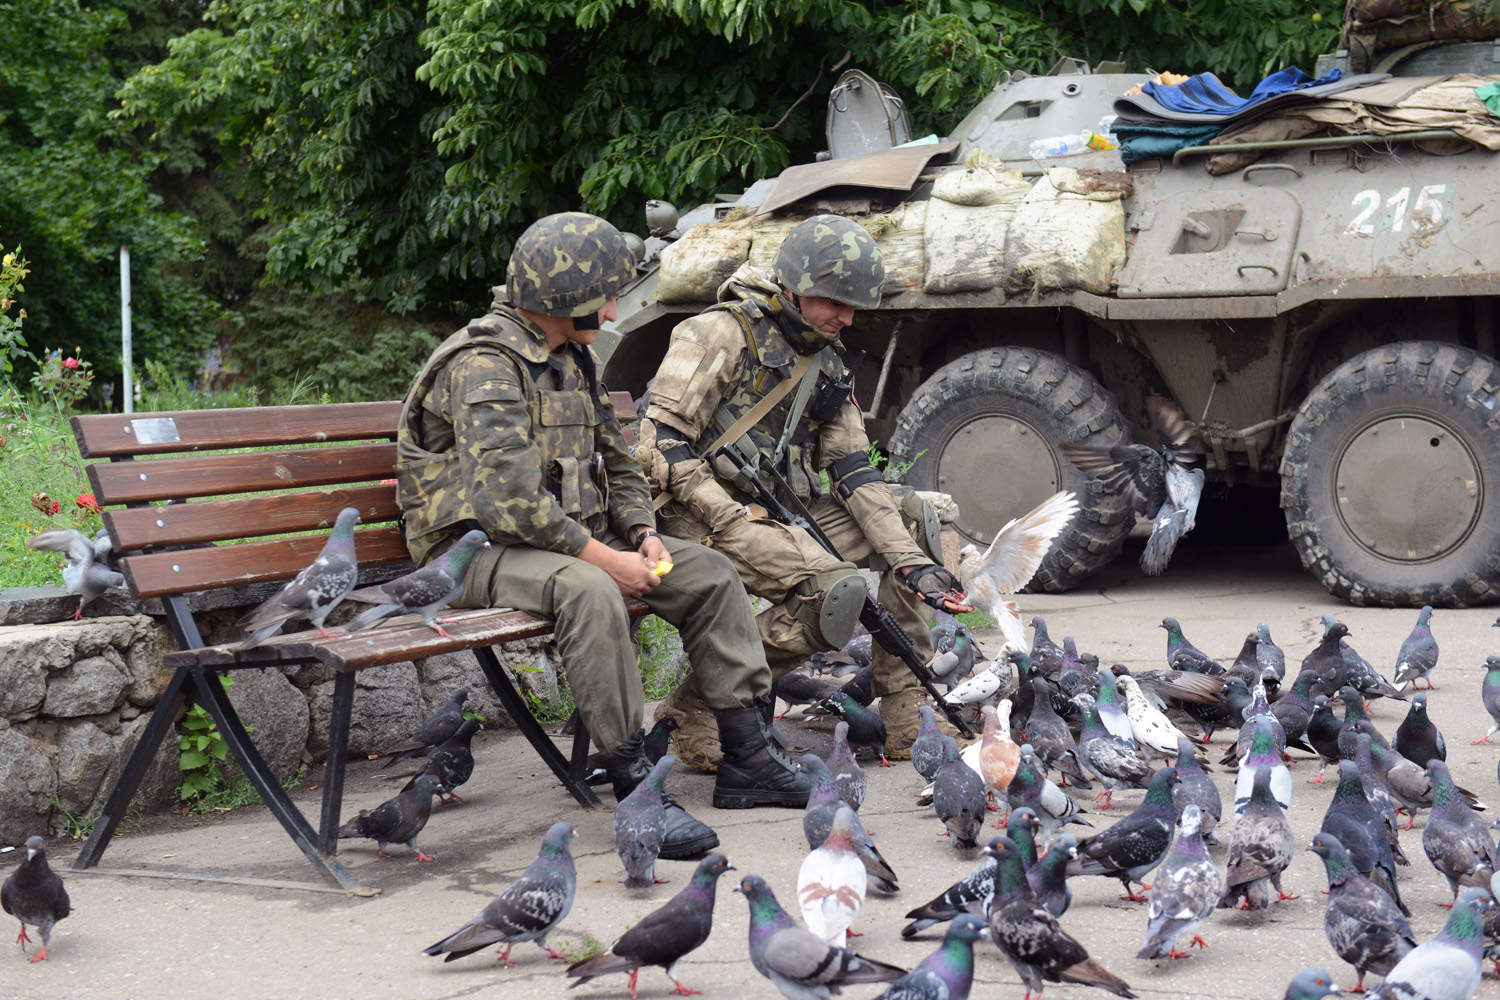 Ukrainian soldiers feed pigeons next to their APC, near the city hall in the eastern Ukrainian city of Slavyansk on July 8, 2014.